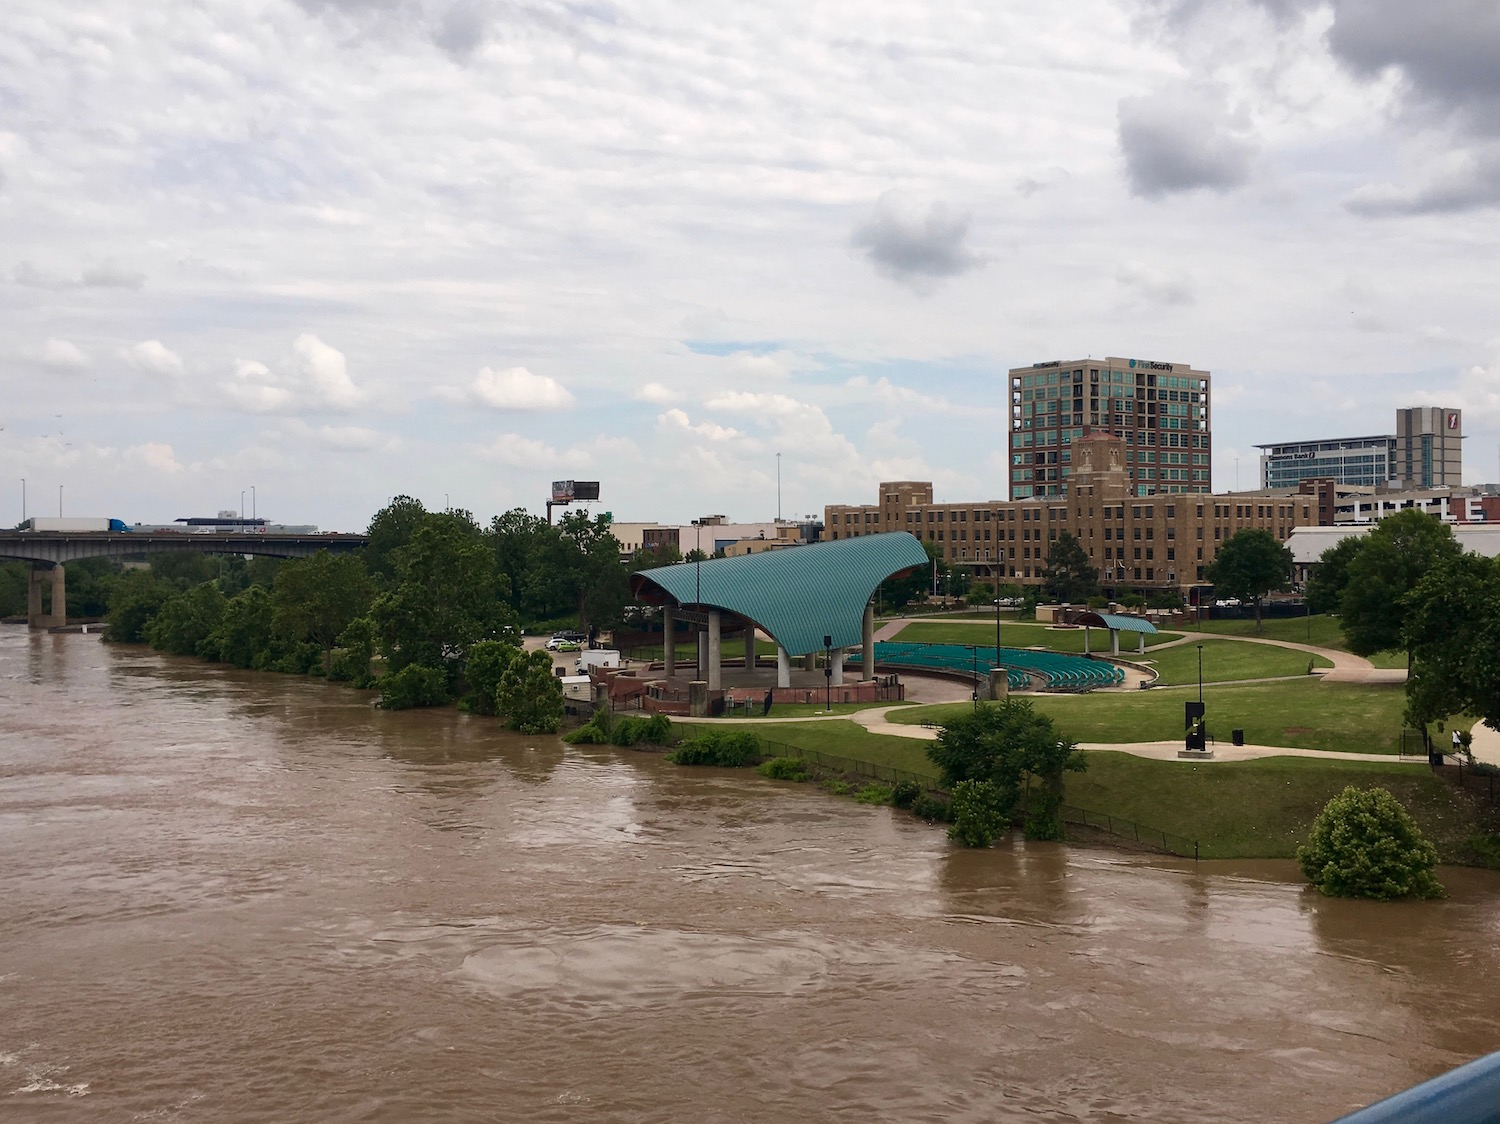 Levees Strained as Arkansas River Stays at Record Levels